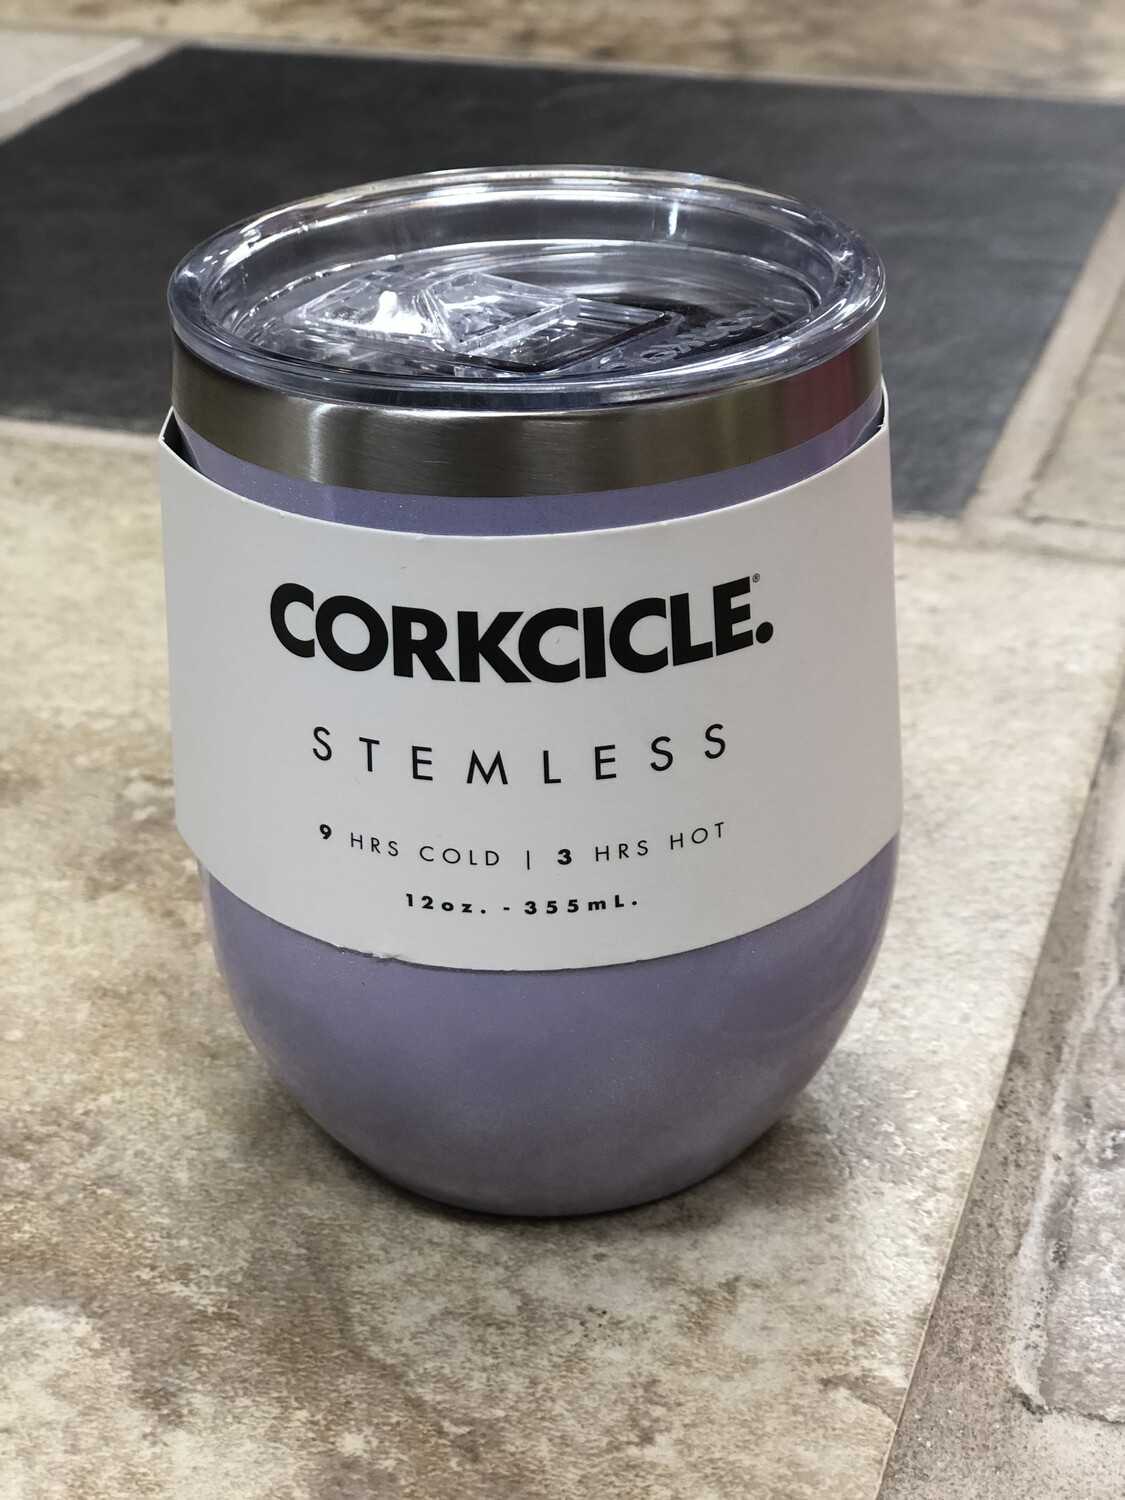 Pixie Dust Stemless Corkcicle